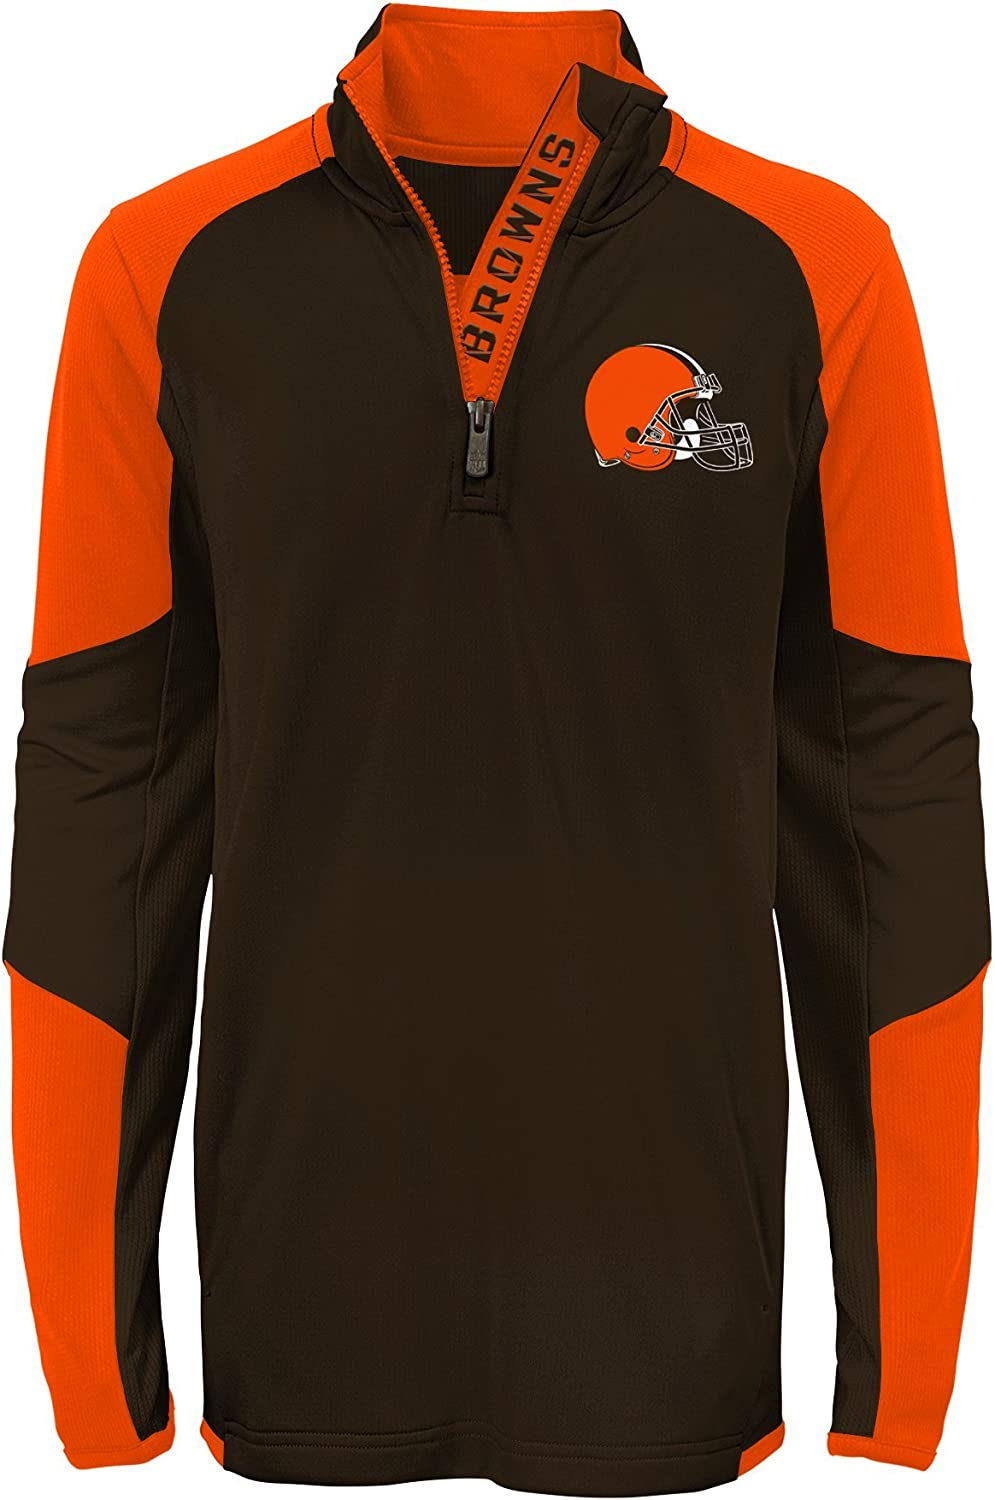 Outerstuff NFL Boys Youth Boys Beta 1//4 Zip Performance Top